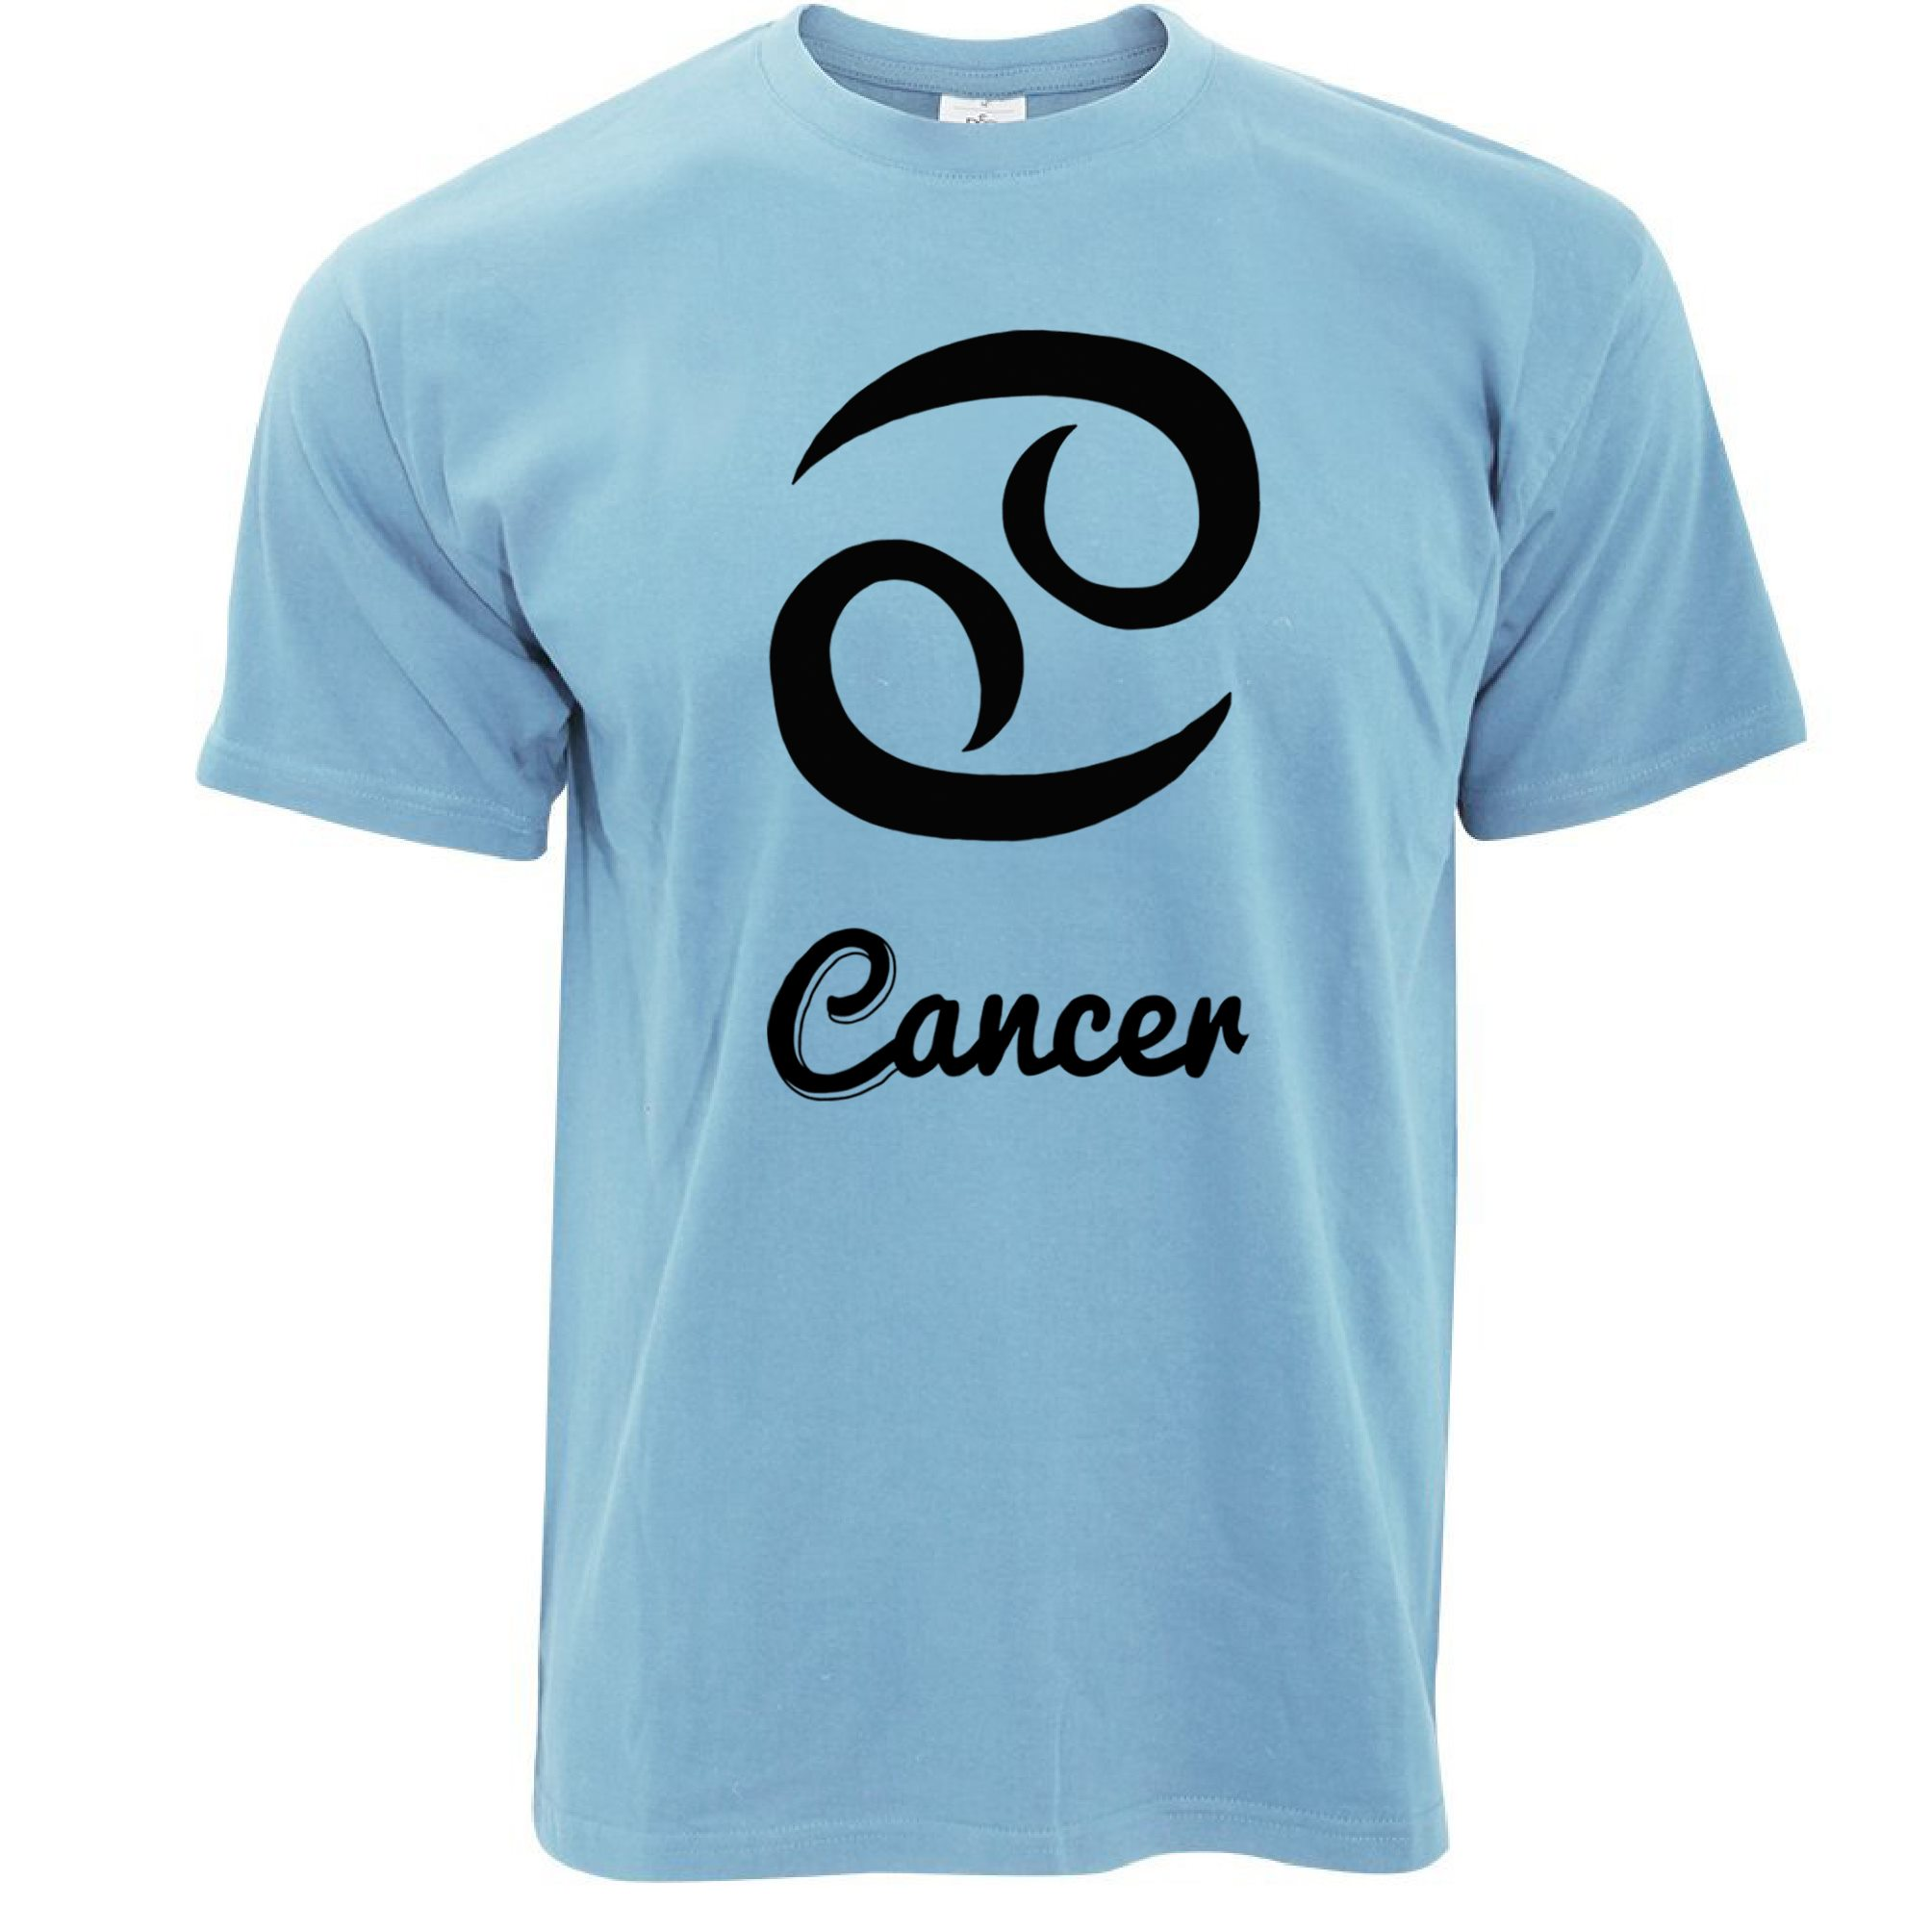 Zodiac sign t-shirts are nice birthday gifts for Aries man or Aries woman and if you are interested in Aries dates, astrologers, astrology horoscope, ascendant, star constellation, constellations, esoteric, zodiac signs or zodiac Aries. Lightweight, Classic fit.